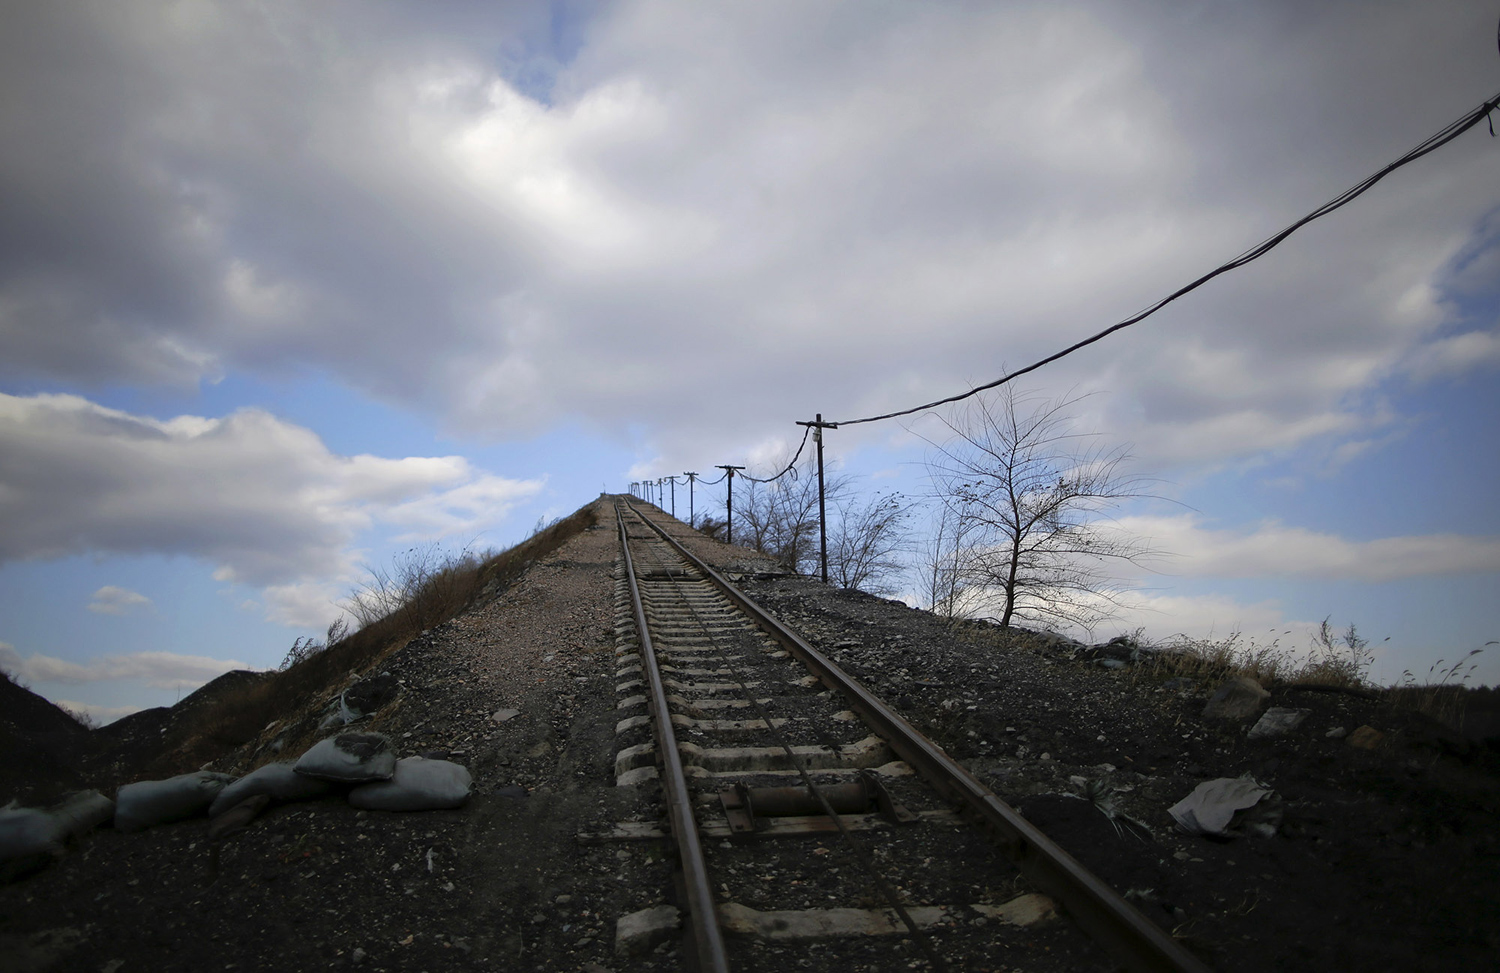 A railway track for carrying coal gangue, also known as coal waste, leads onto the top of the gangue hill from the exit of a coal mine on the outskirts of Jixi in China